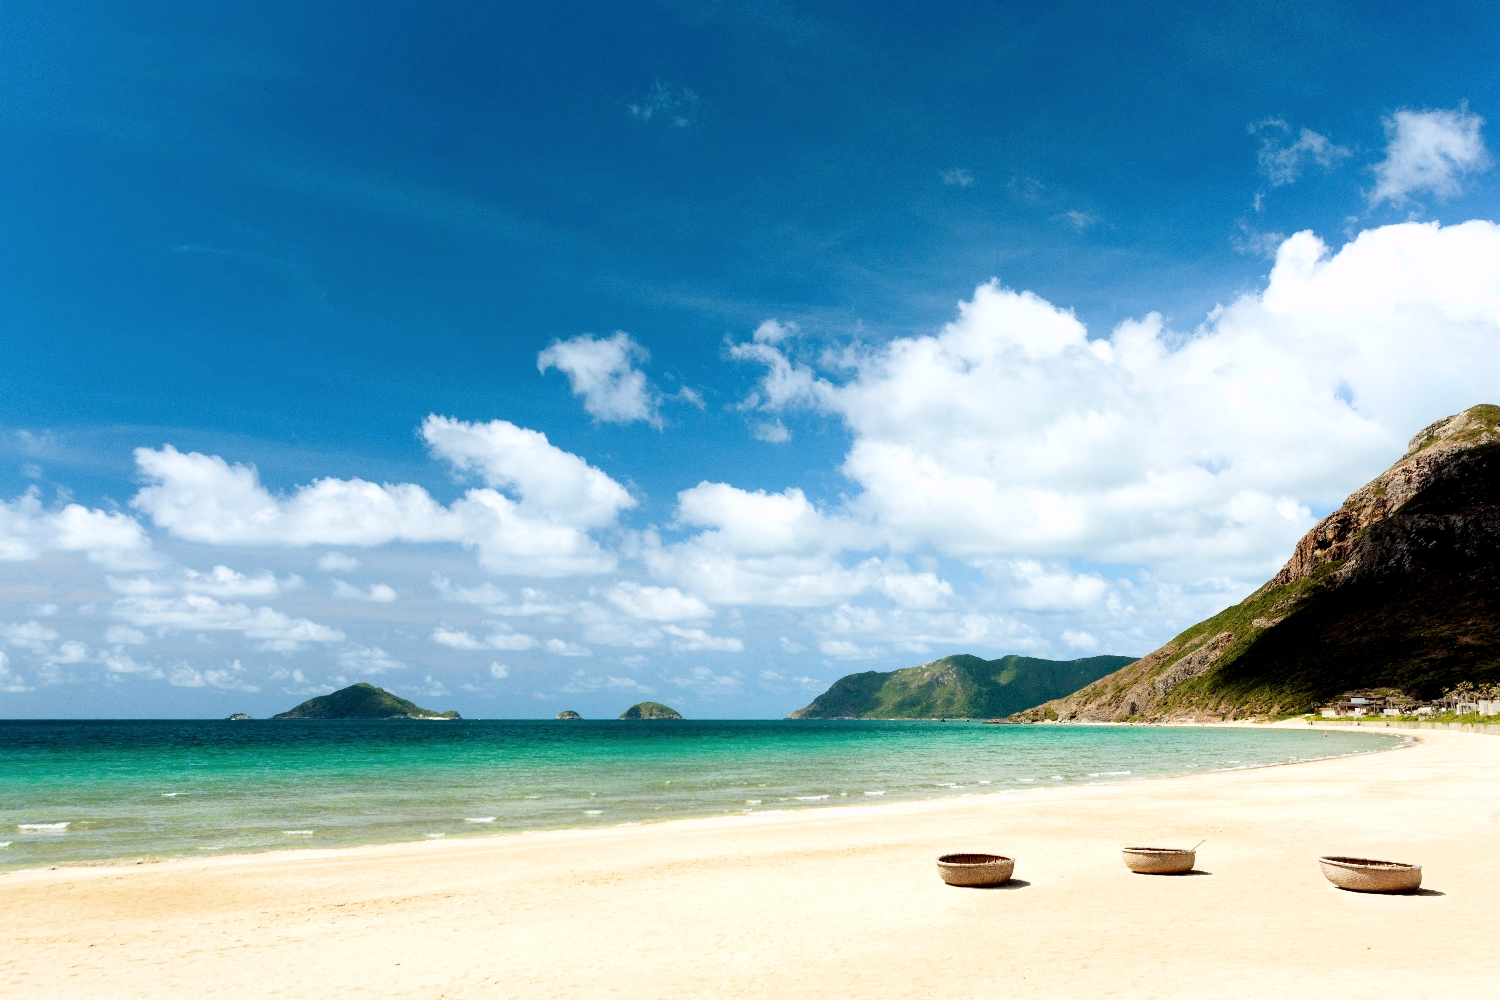 Duc me con so long beach - Known As One Of The Most Attractive Beaches Of Con Dao Bai Dat Doc Also Brings Tourists To An Unspoiled Natural Scenery Covered With Bushy Woodland And